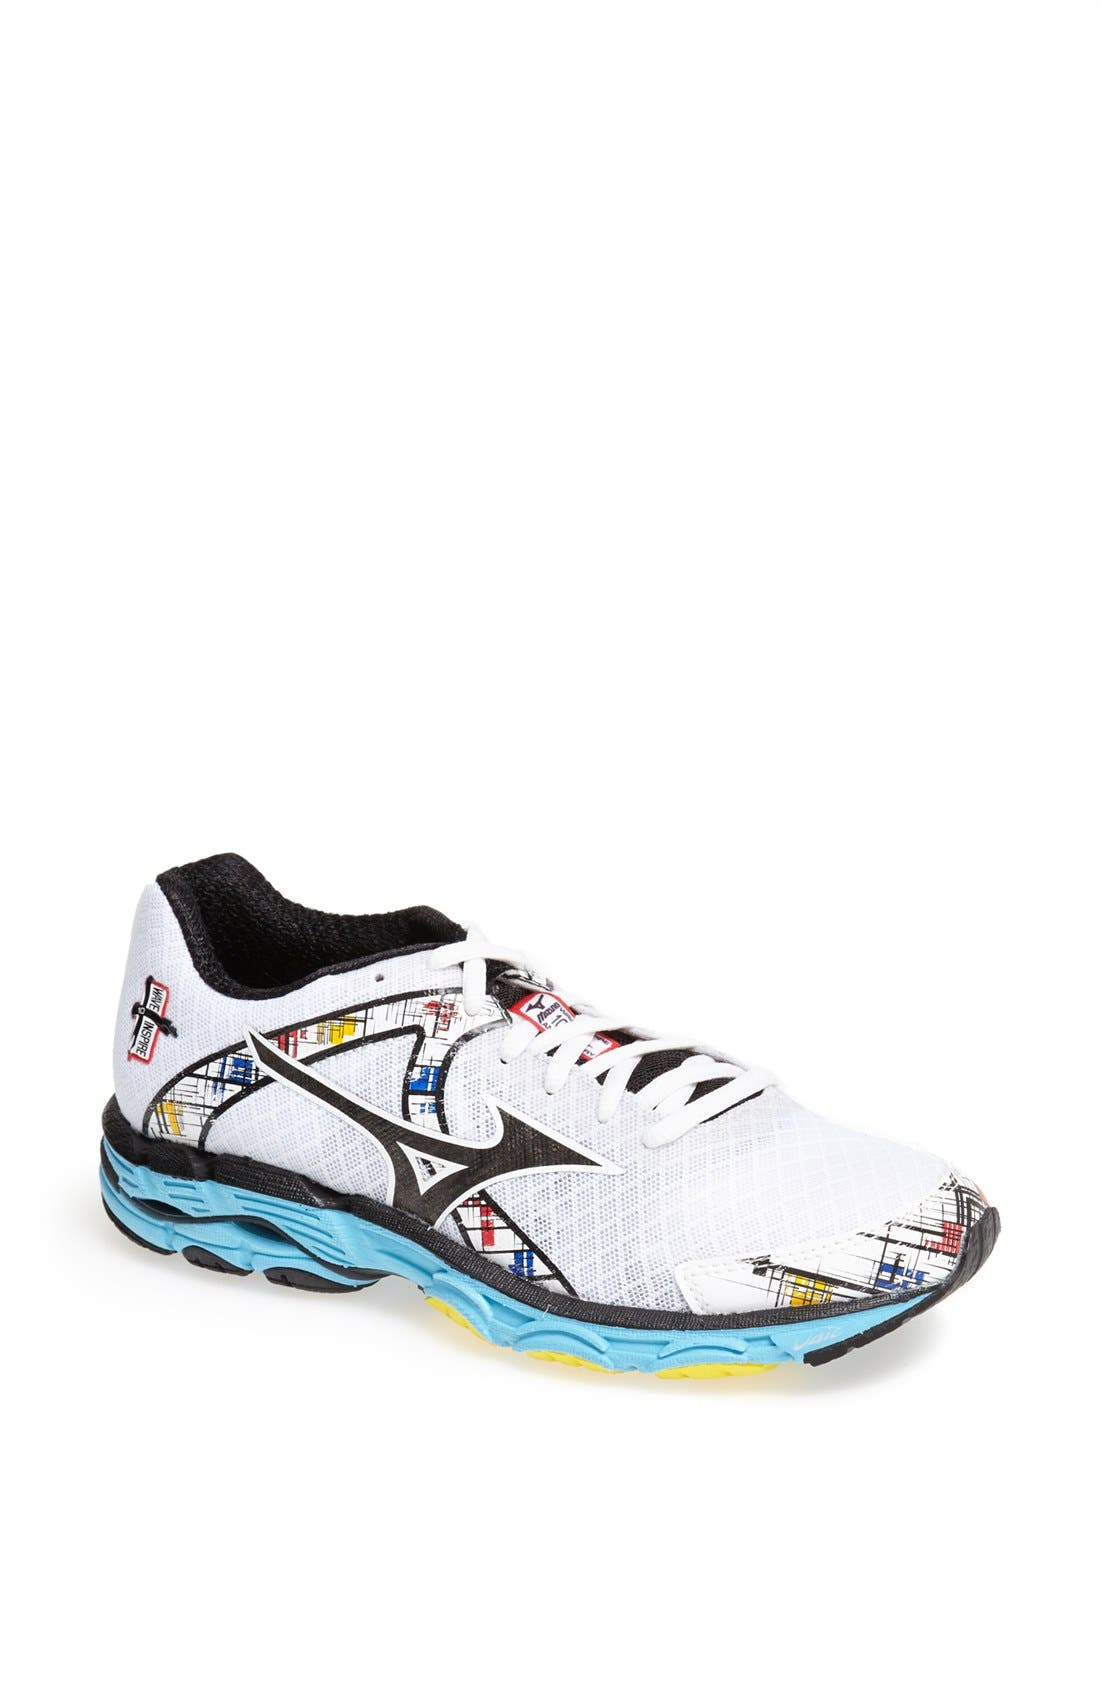 Alternate Image 1 Selected - Mizuno 'Wave Inspire 10th Anniversary' Running Shoe (Women)